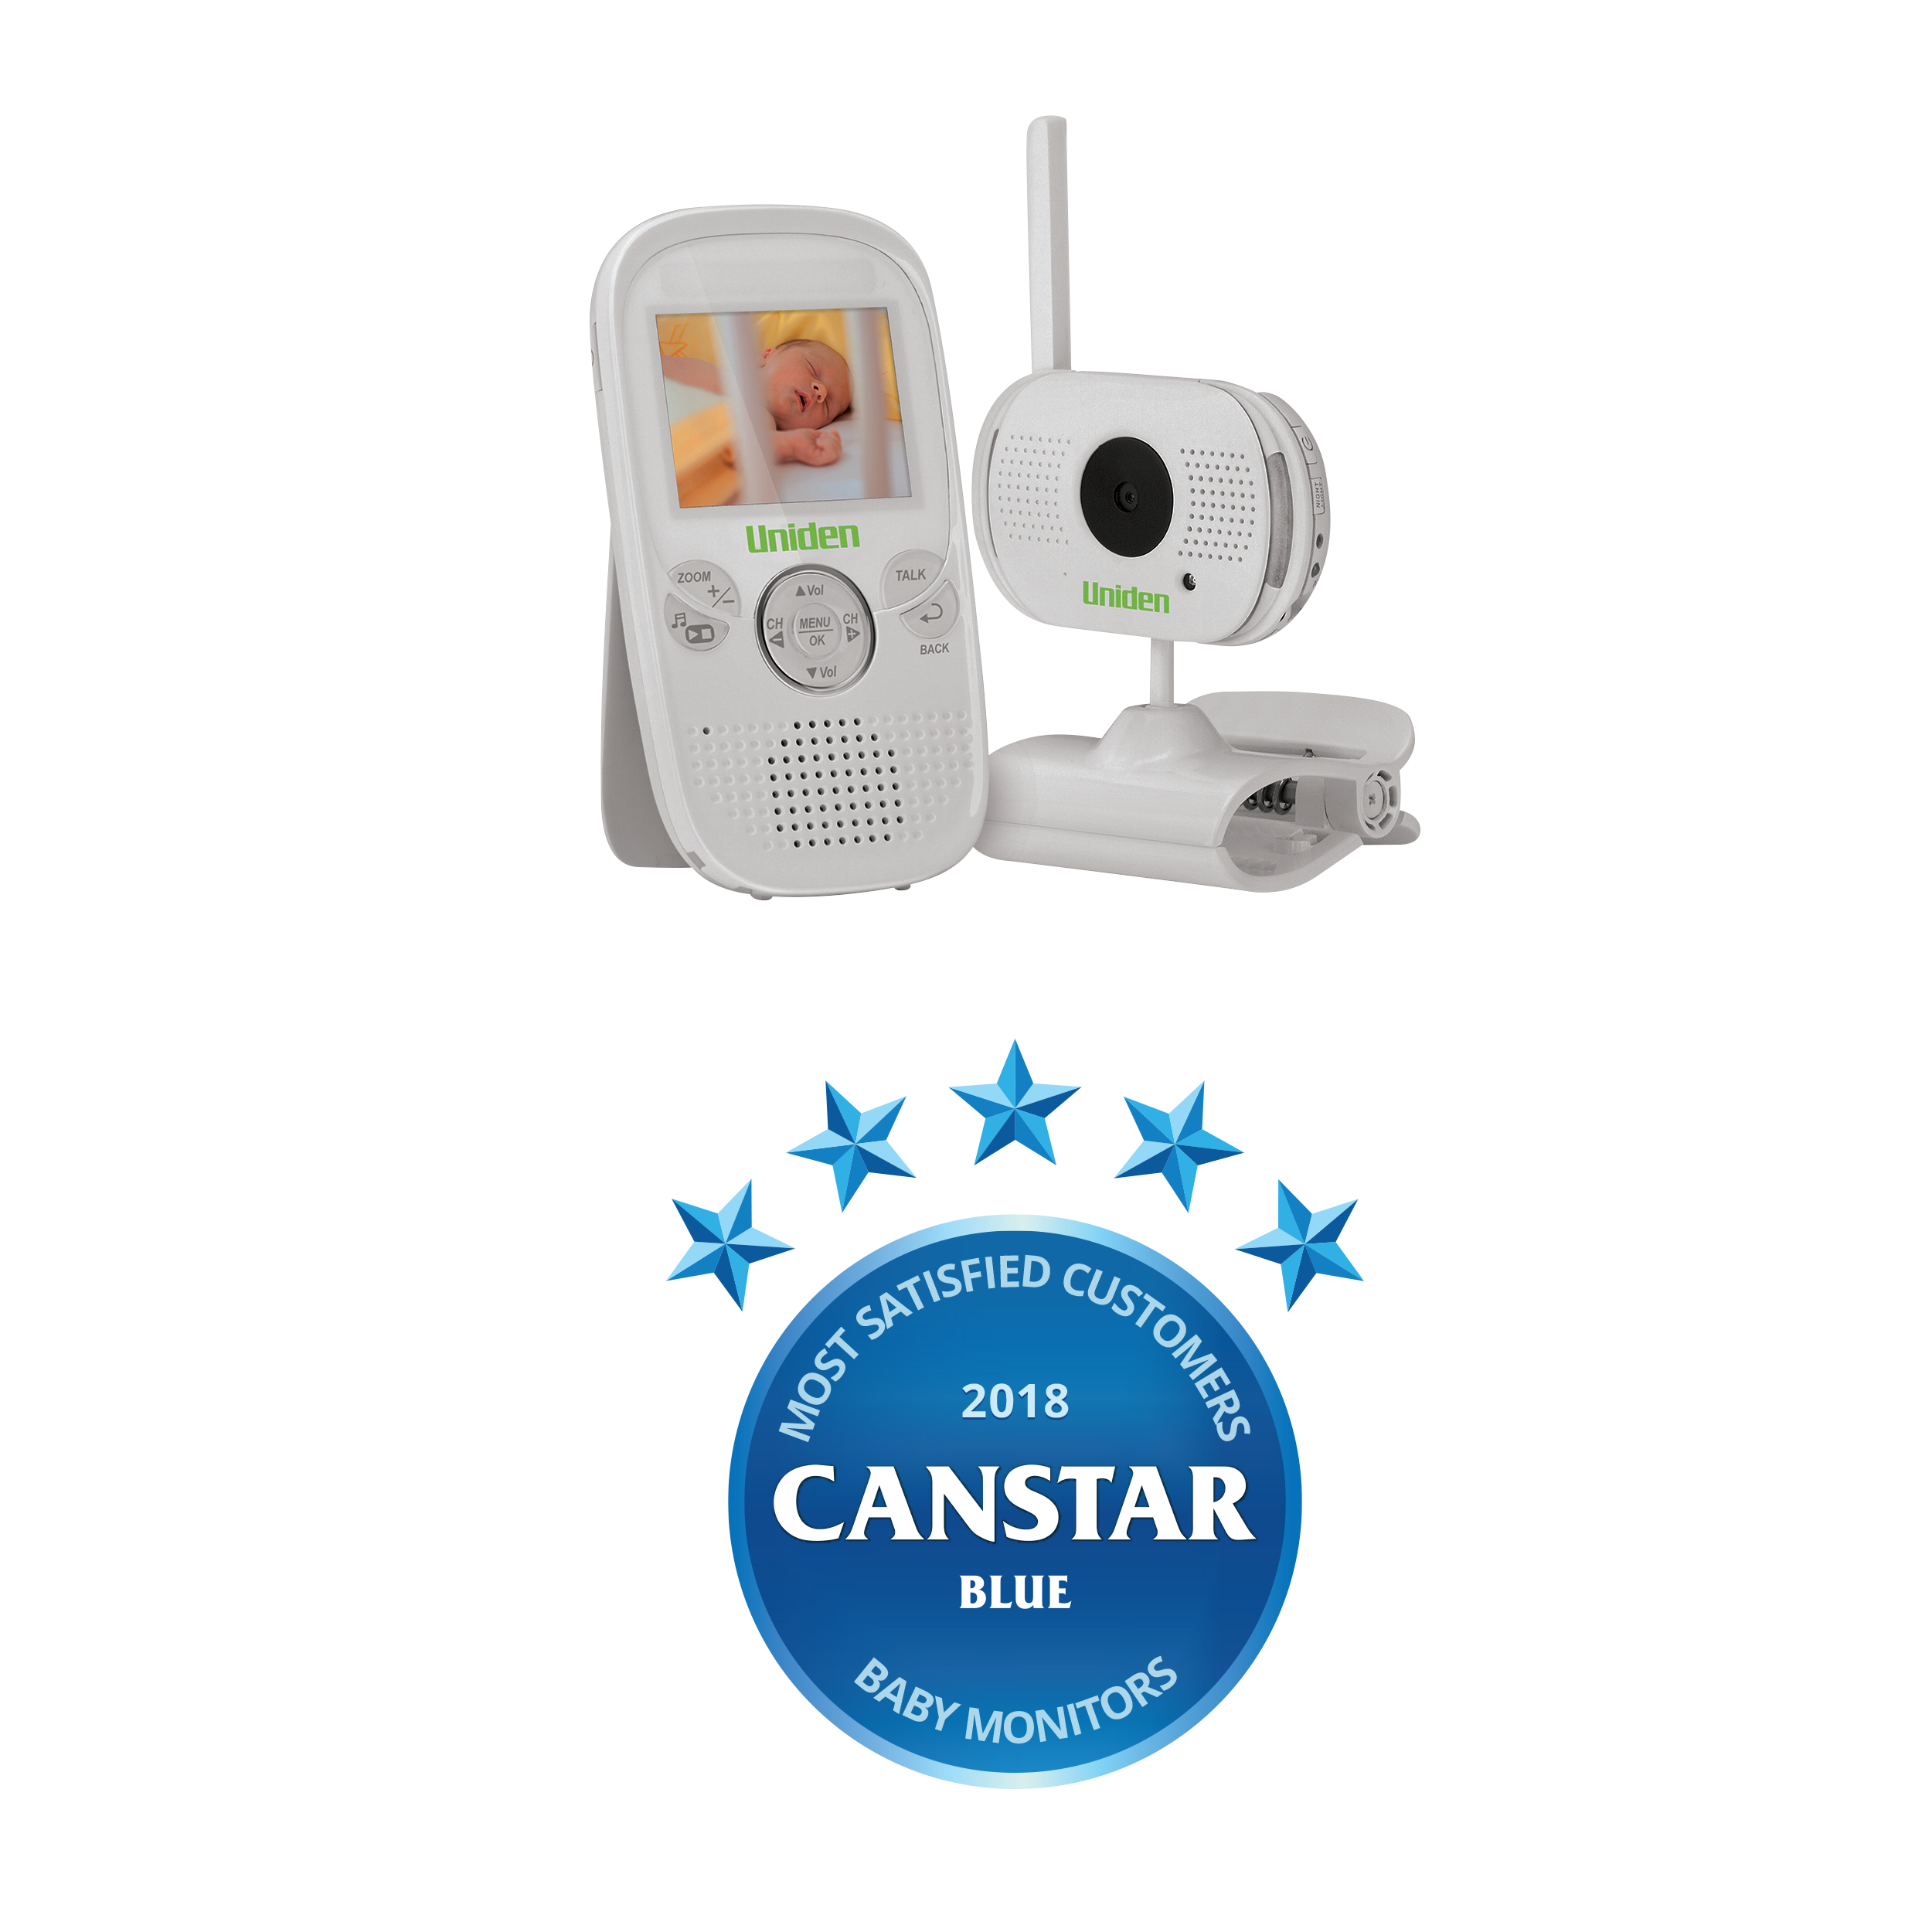 BW 3001 (Canstar)